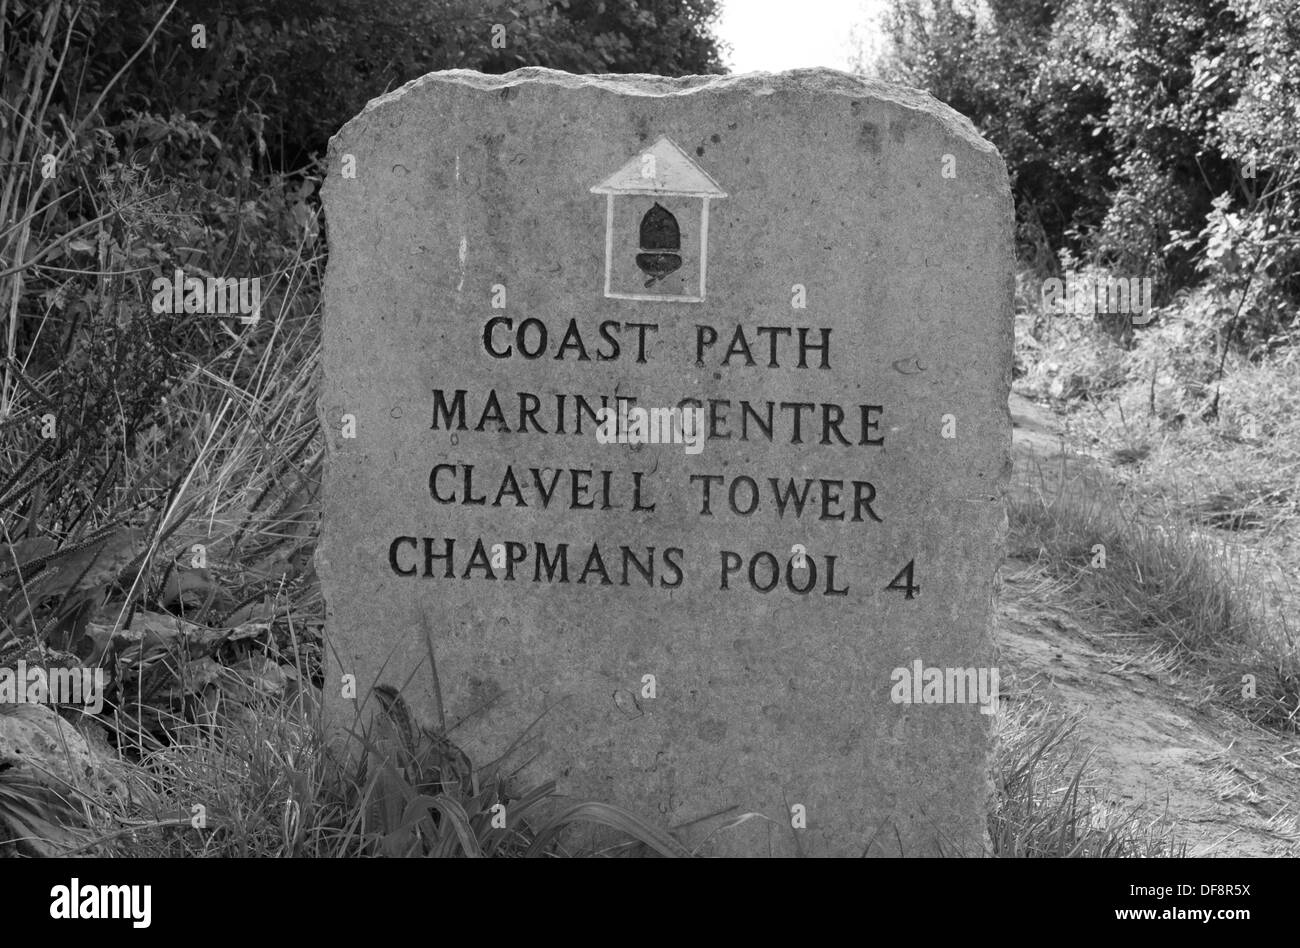 A Old Stone Path/Route Marker Marks The Coastal Walk To Clavell Tower, Kimmeridge, Dorset, England, Uk.(Black and white) - Stock Image